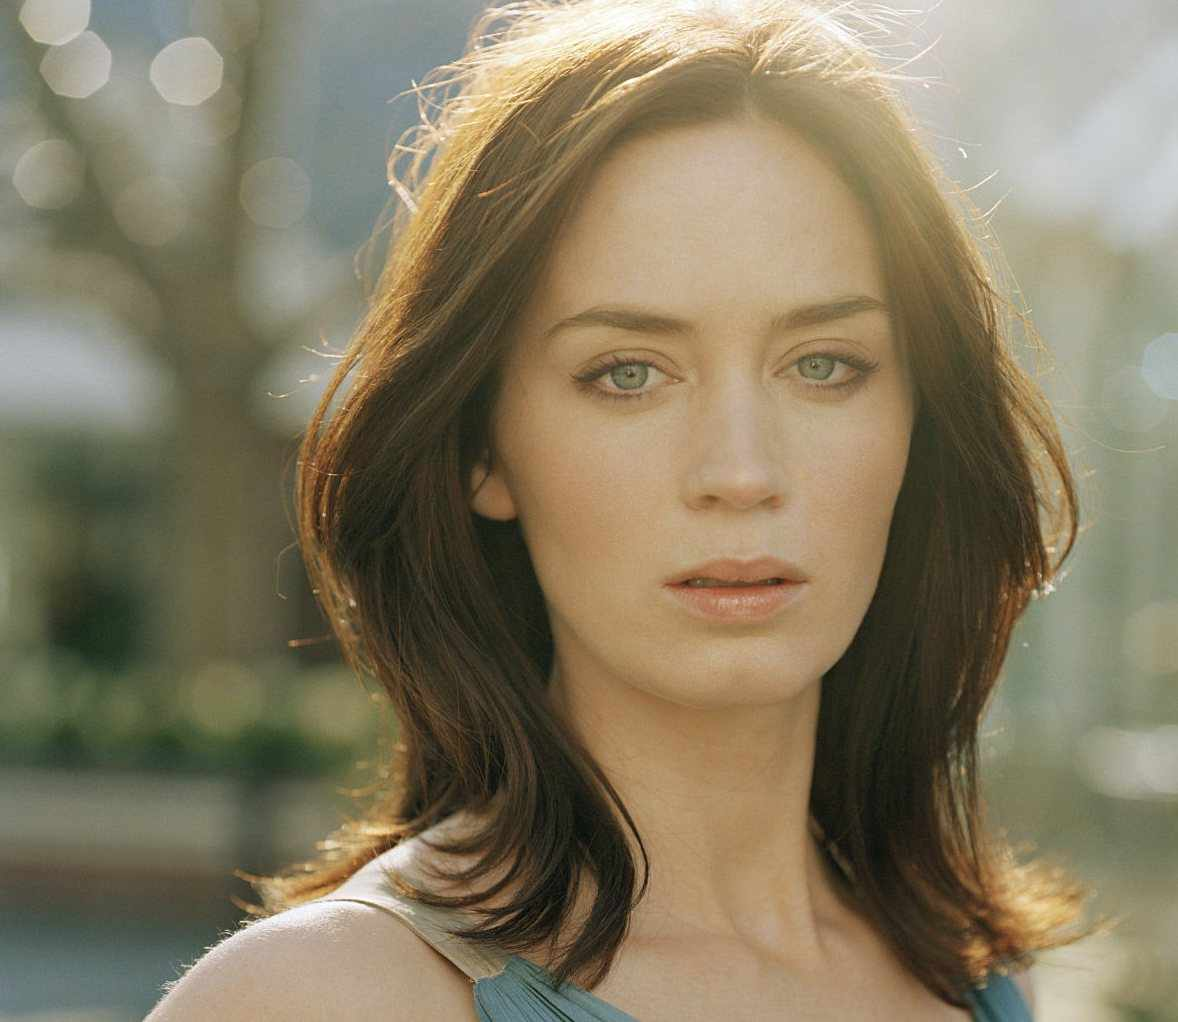 HQ Emily Blunt Wallpapers   File 65.74Kb